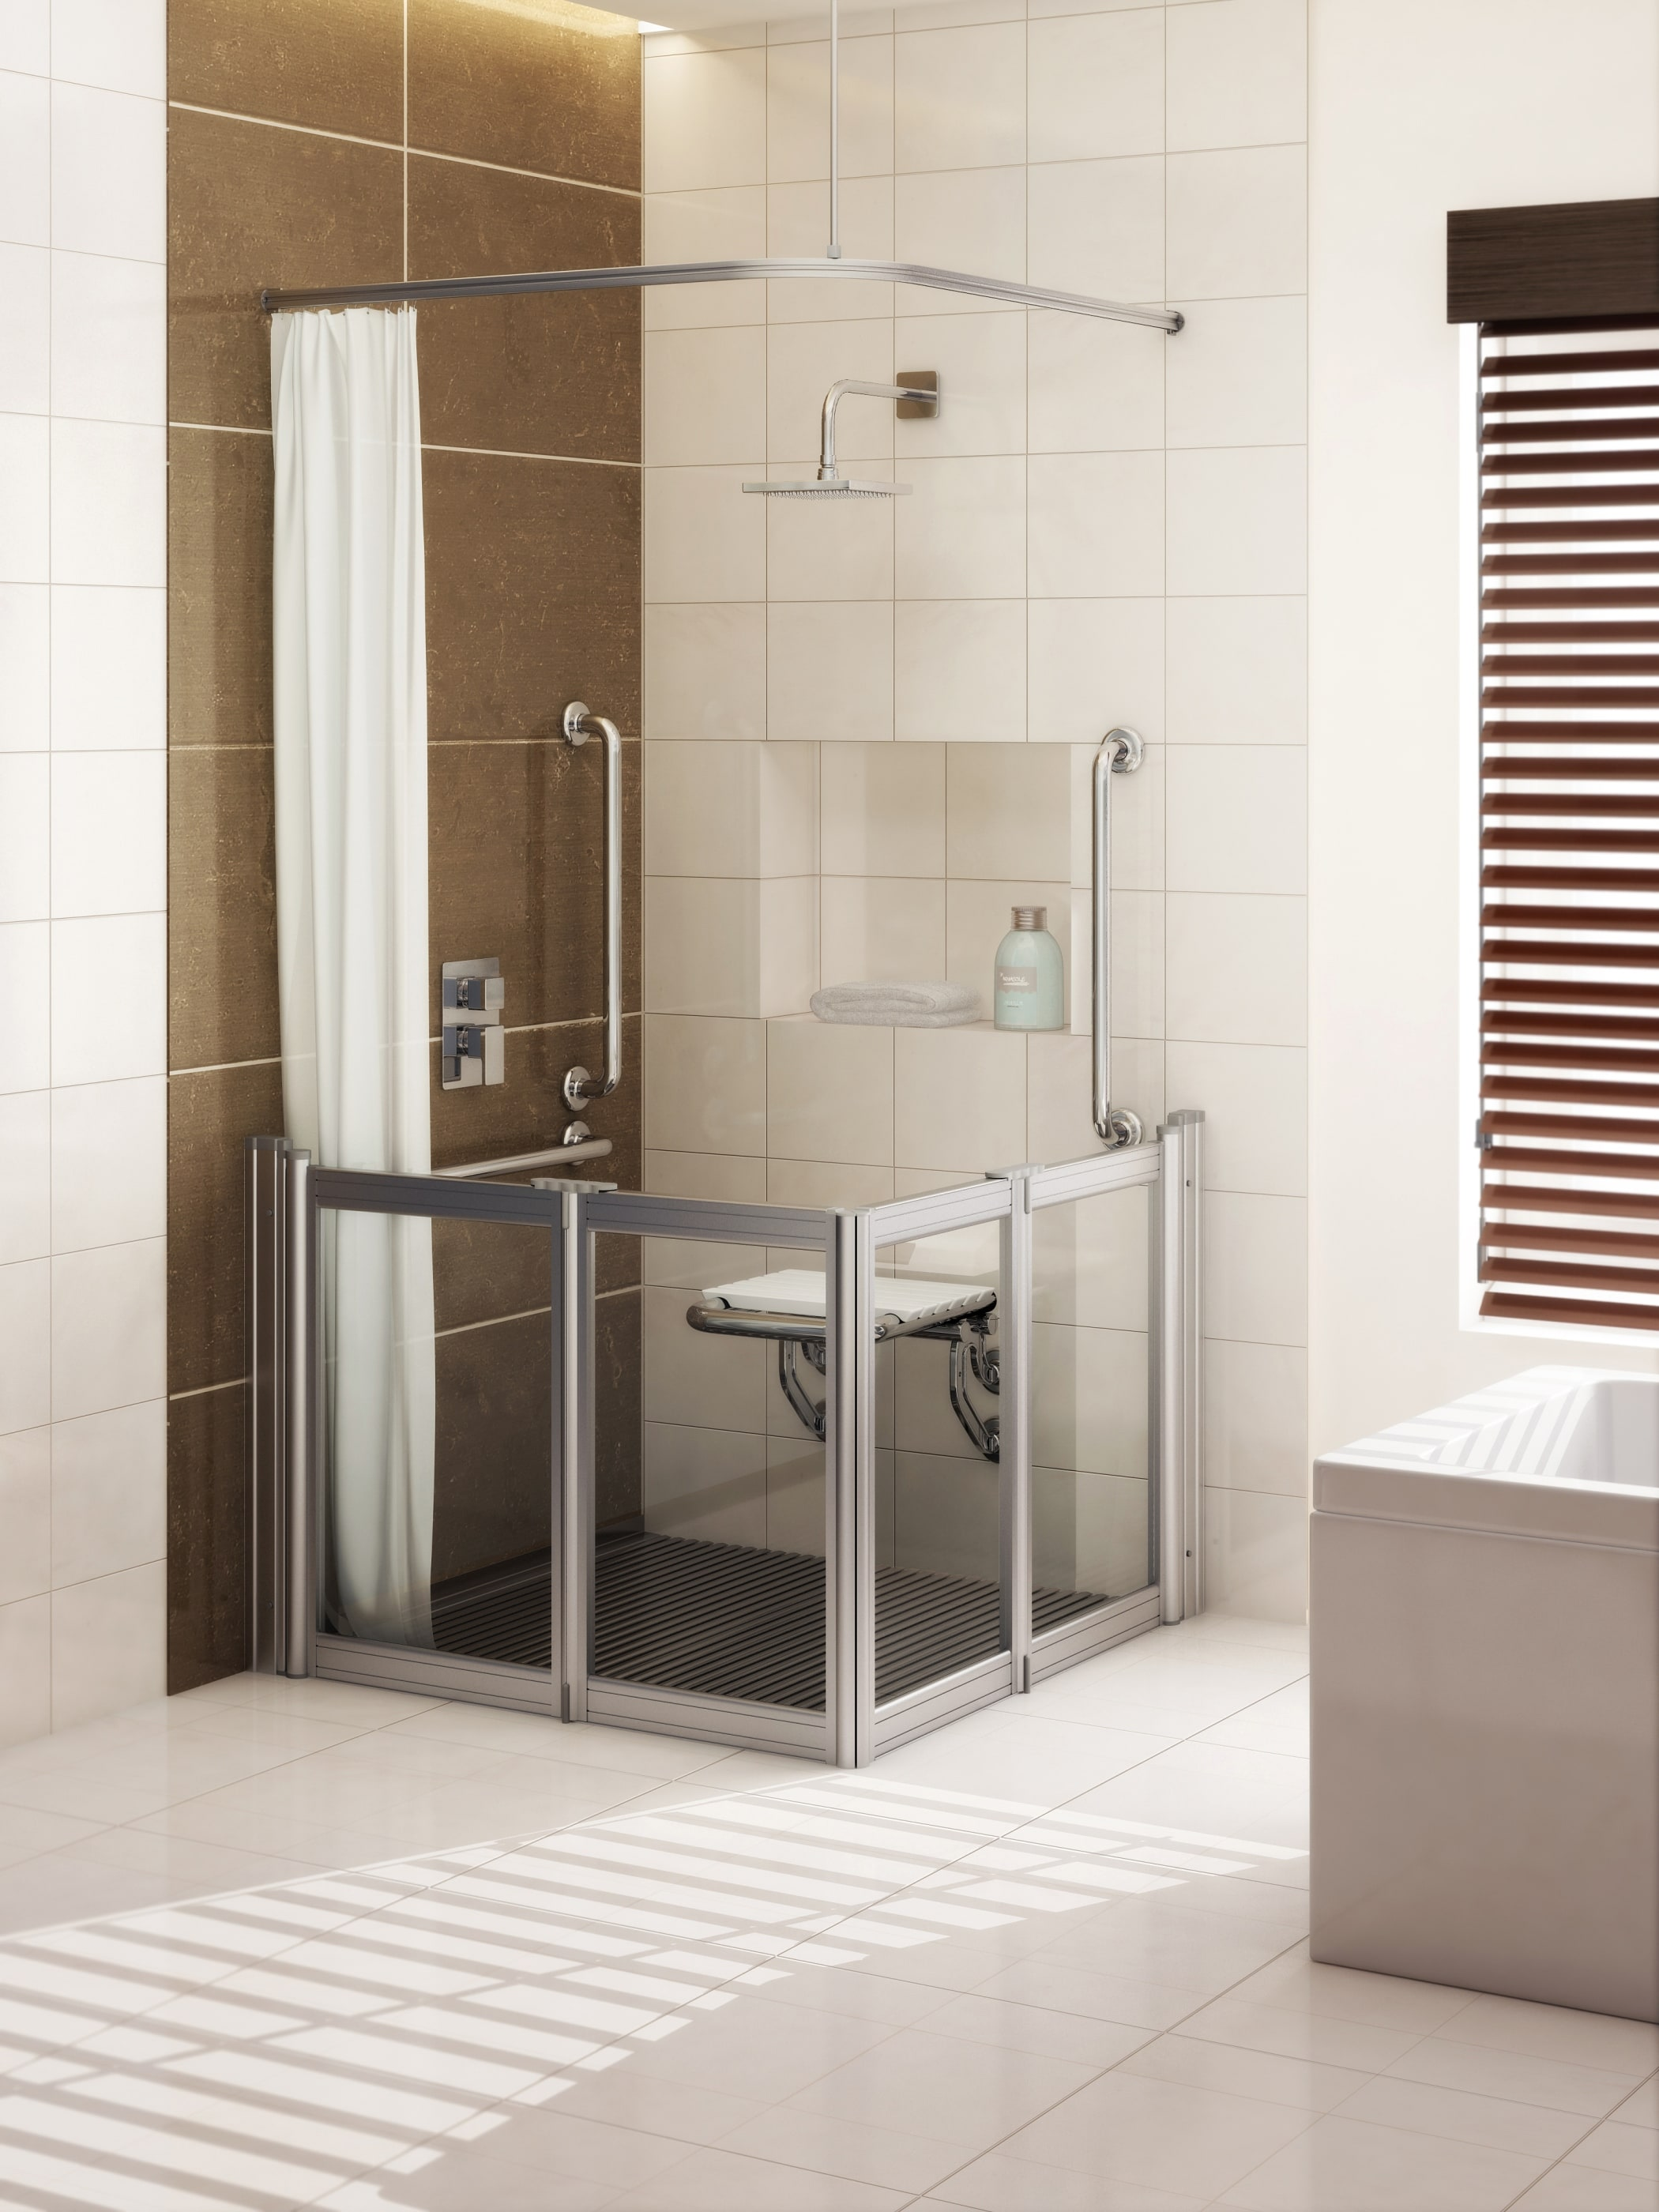 Neacou0027s Chrome Effect Grab Rails And Shower Seat With Their Shower Doors  And Shower Grille